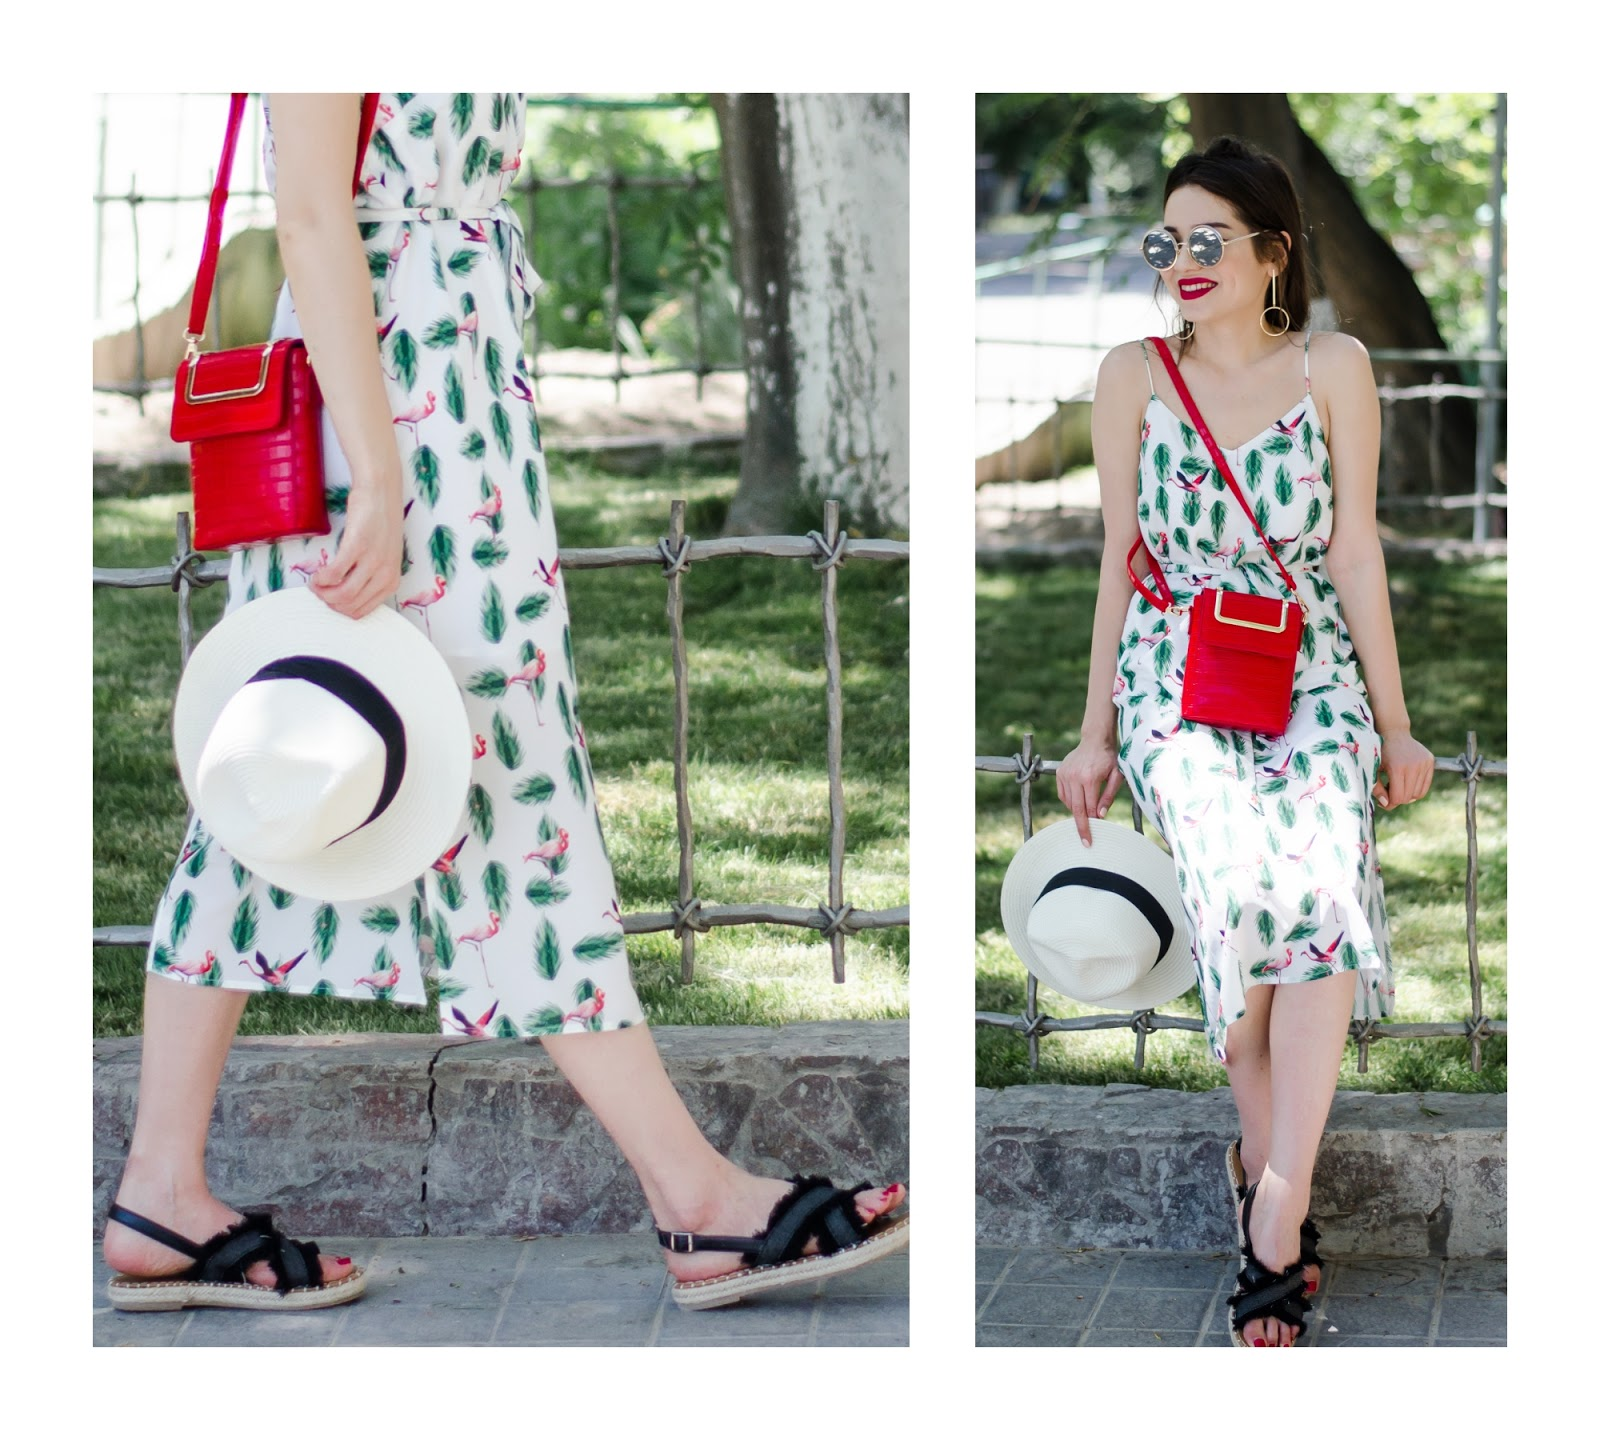 diyorasnotes diyora beta fashion blogger style outfitoftheday lookoftheday cami dress midi flat sandals straw hat red bag casual look